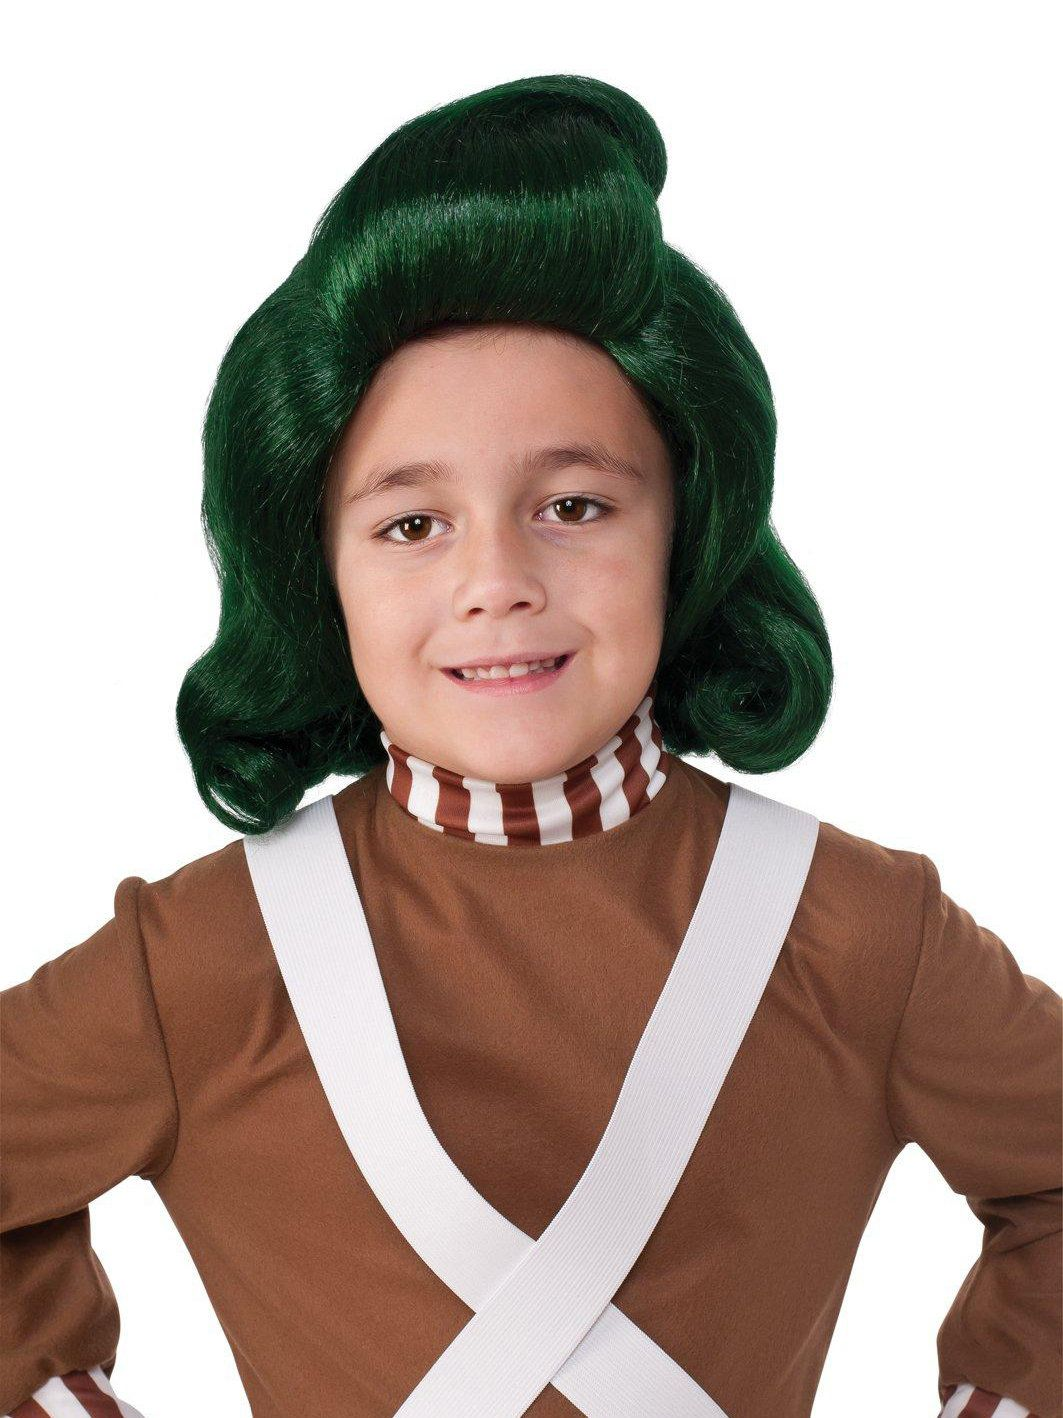 Willy Wonka the Chocolate Factory Oompa Loompa Wig For Children  sc 1 st  Wholesale Halloween Costumes & Willy Wonka the Chocolate Factory: Oompa Loompa Wig For Children ...